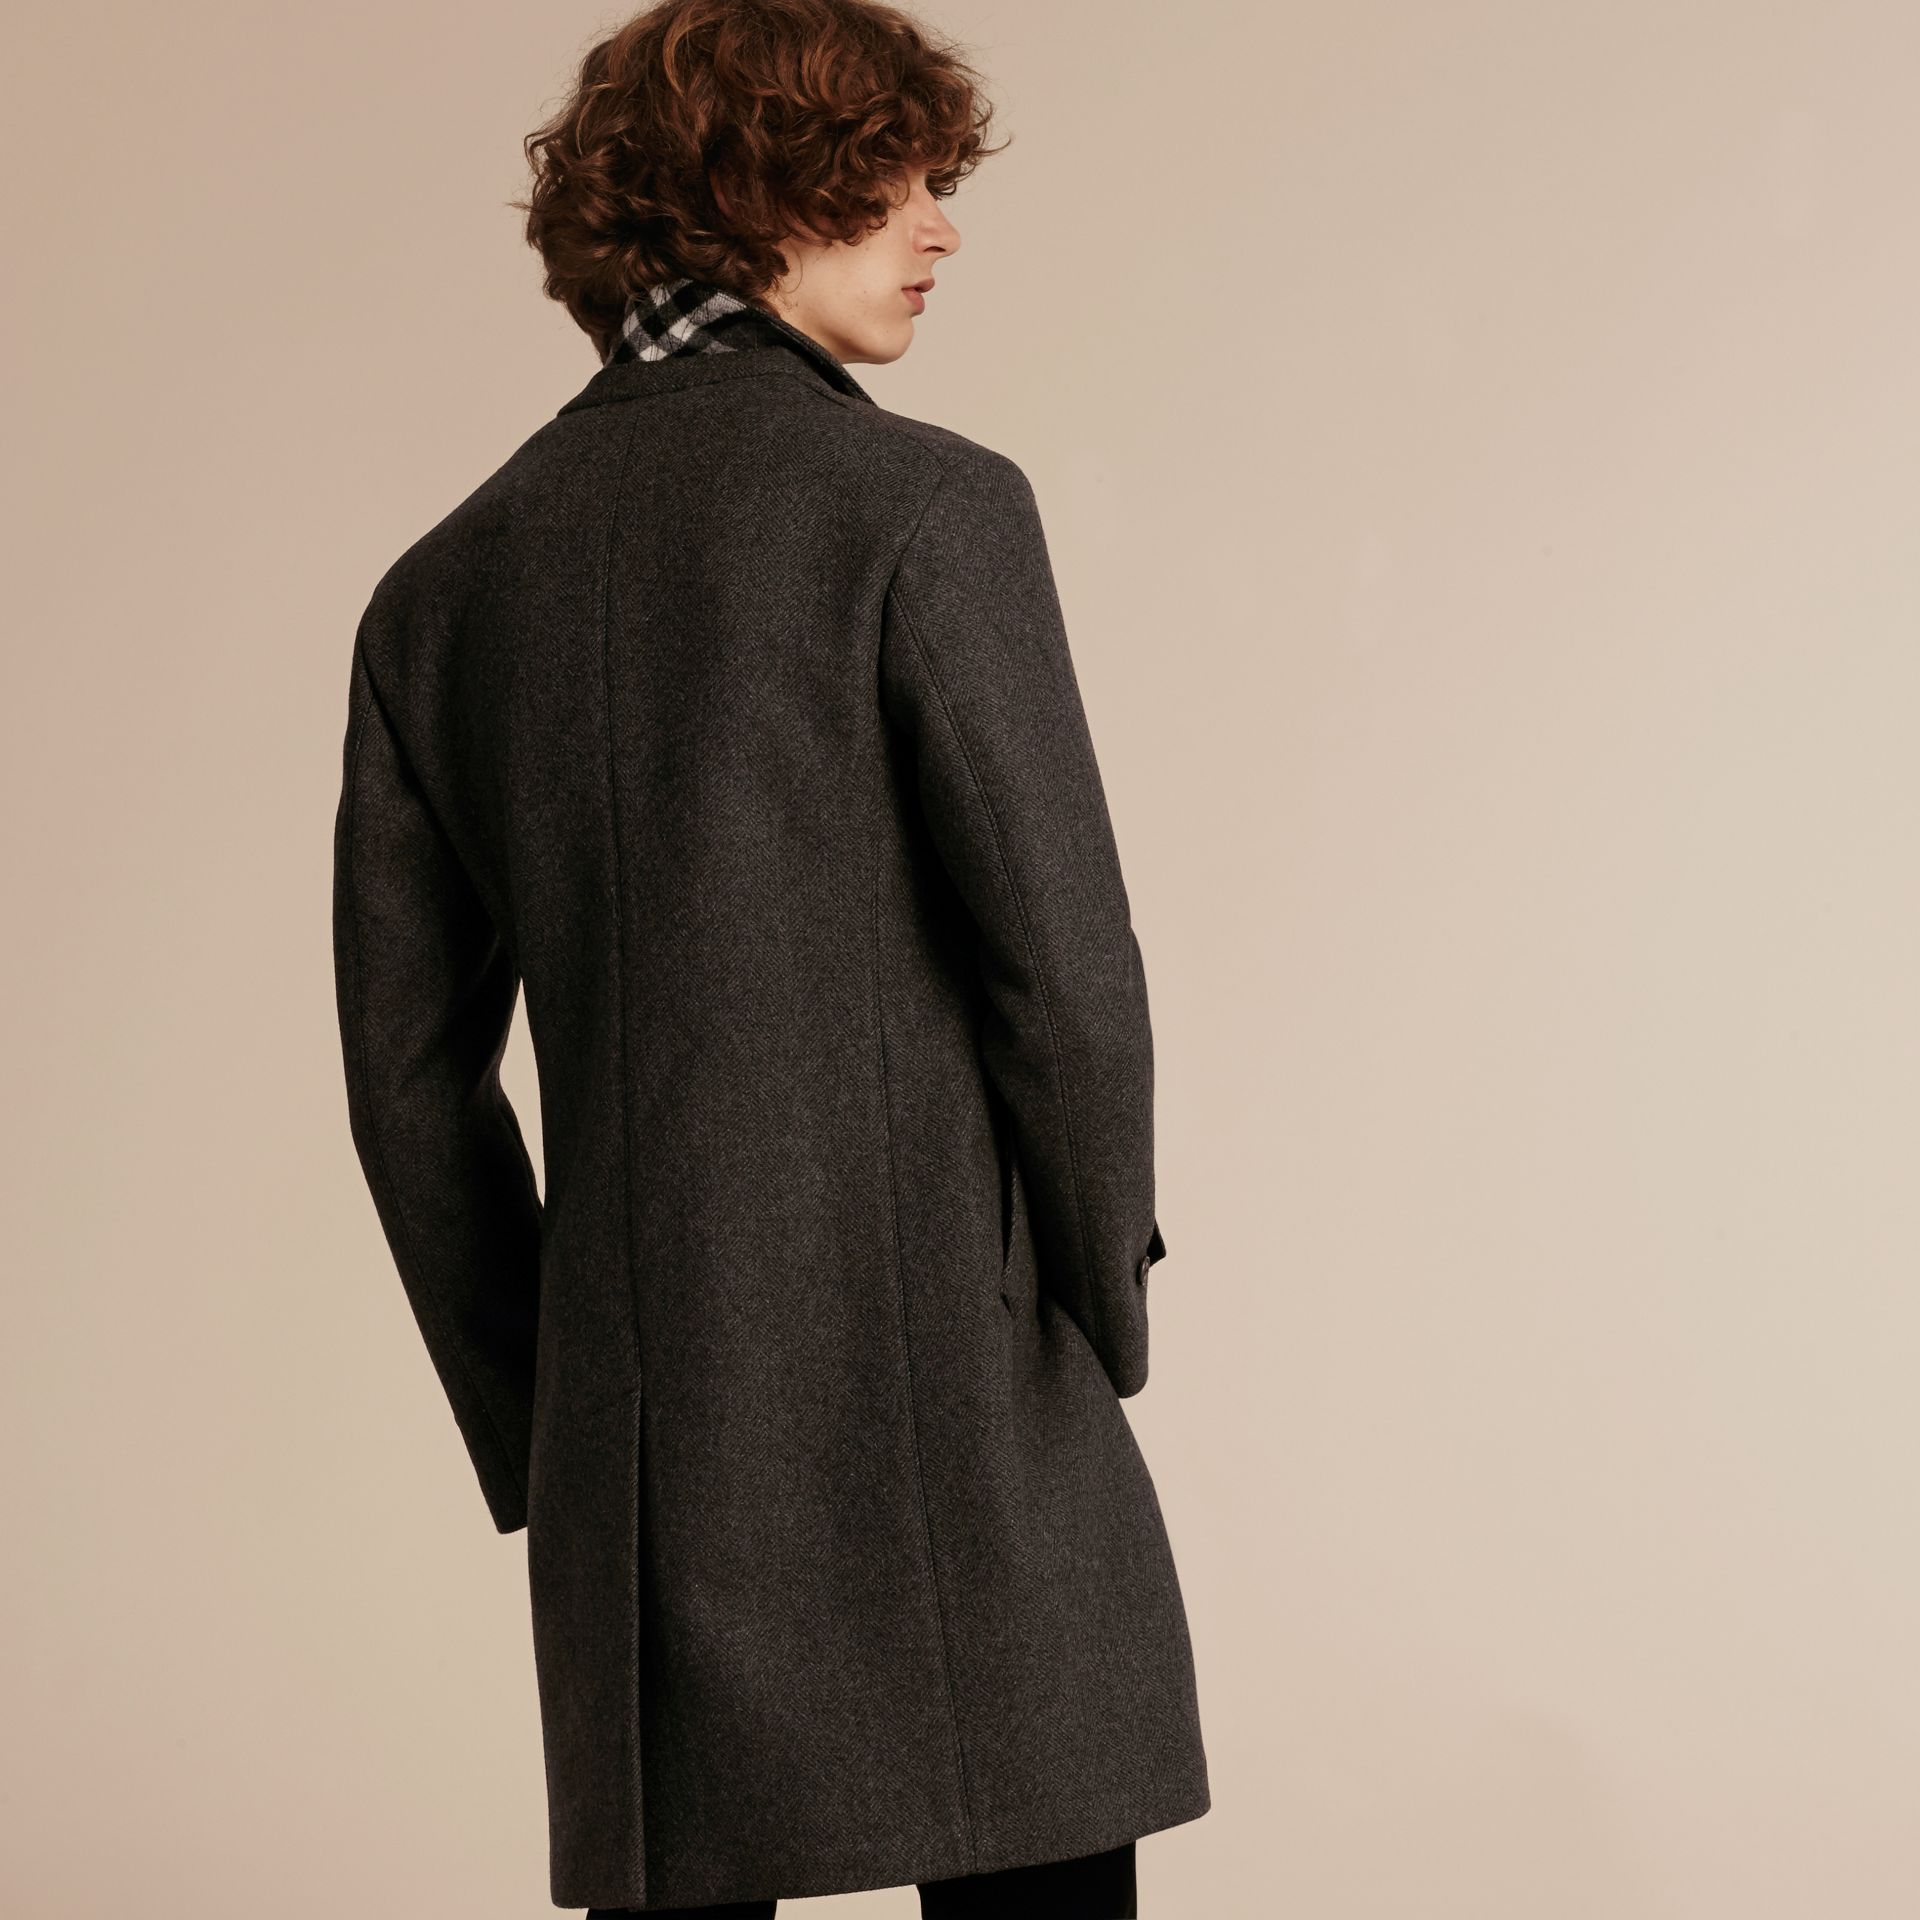 Charcoal melange Single-breasted Wool Blend Tailored Coat - gallery image 3